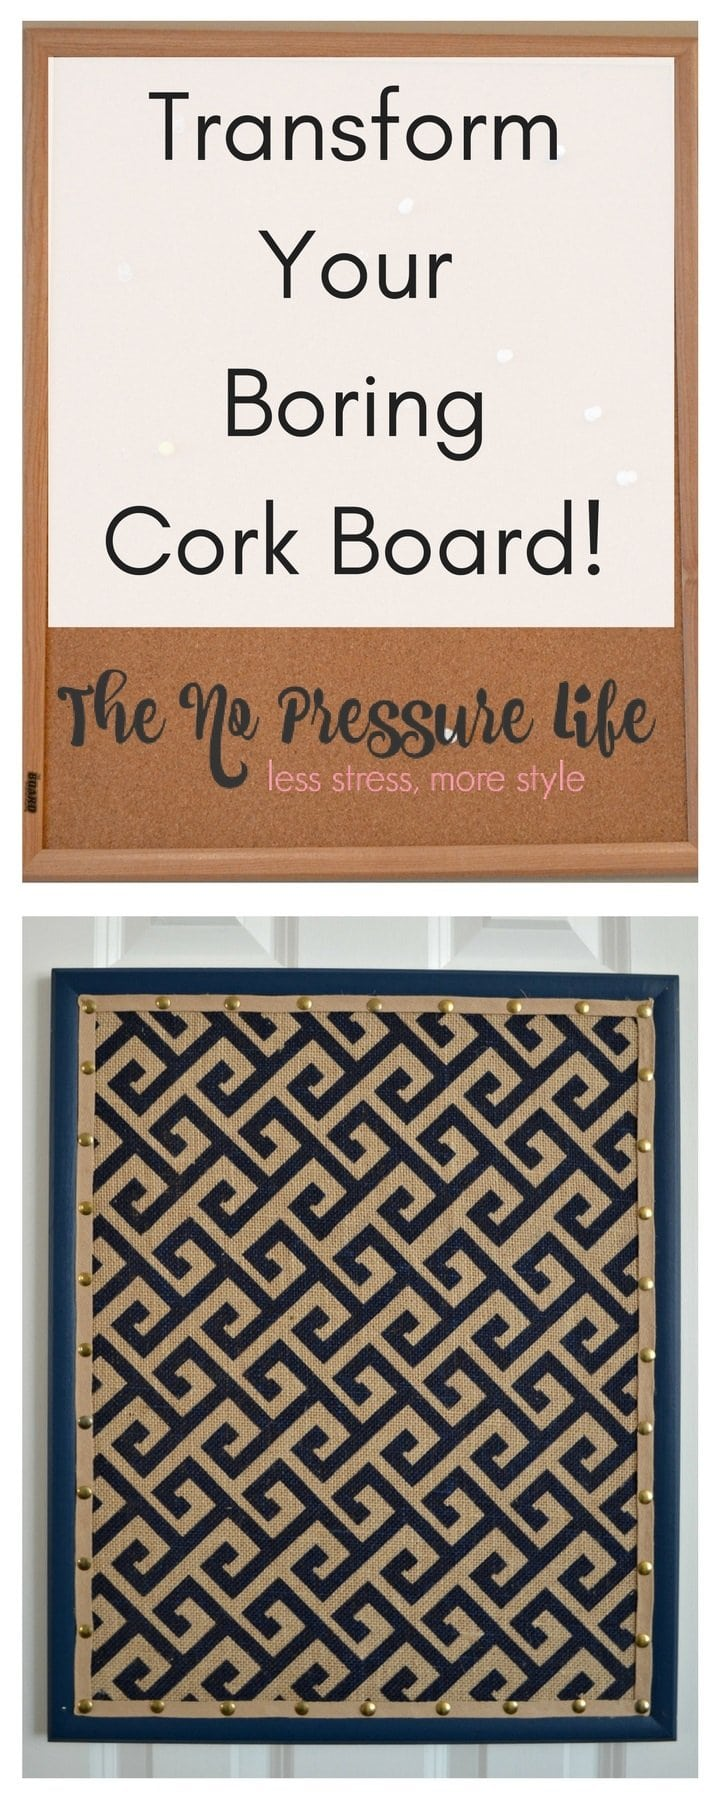 Transform your cork board! This is a great step-by-step tutorial to upgrade a plain cork board with burlap, paint, and faux nail head trim.